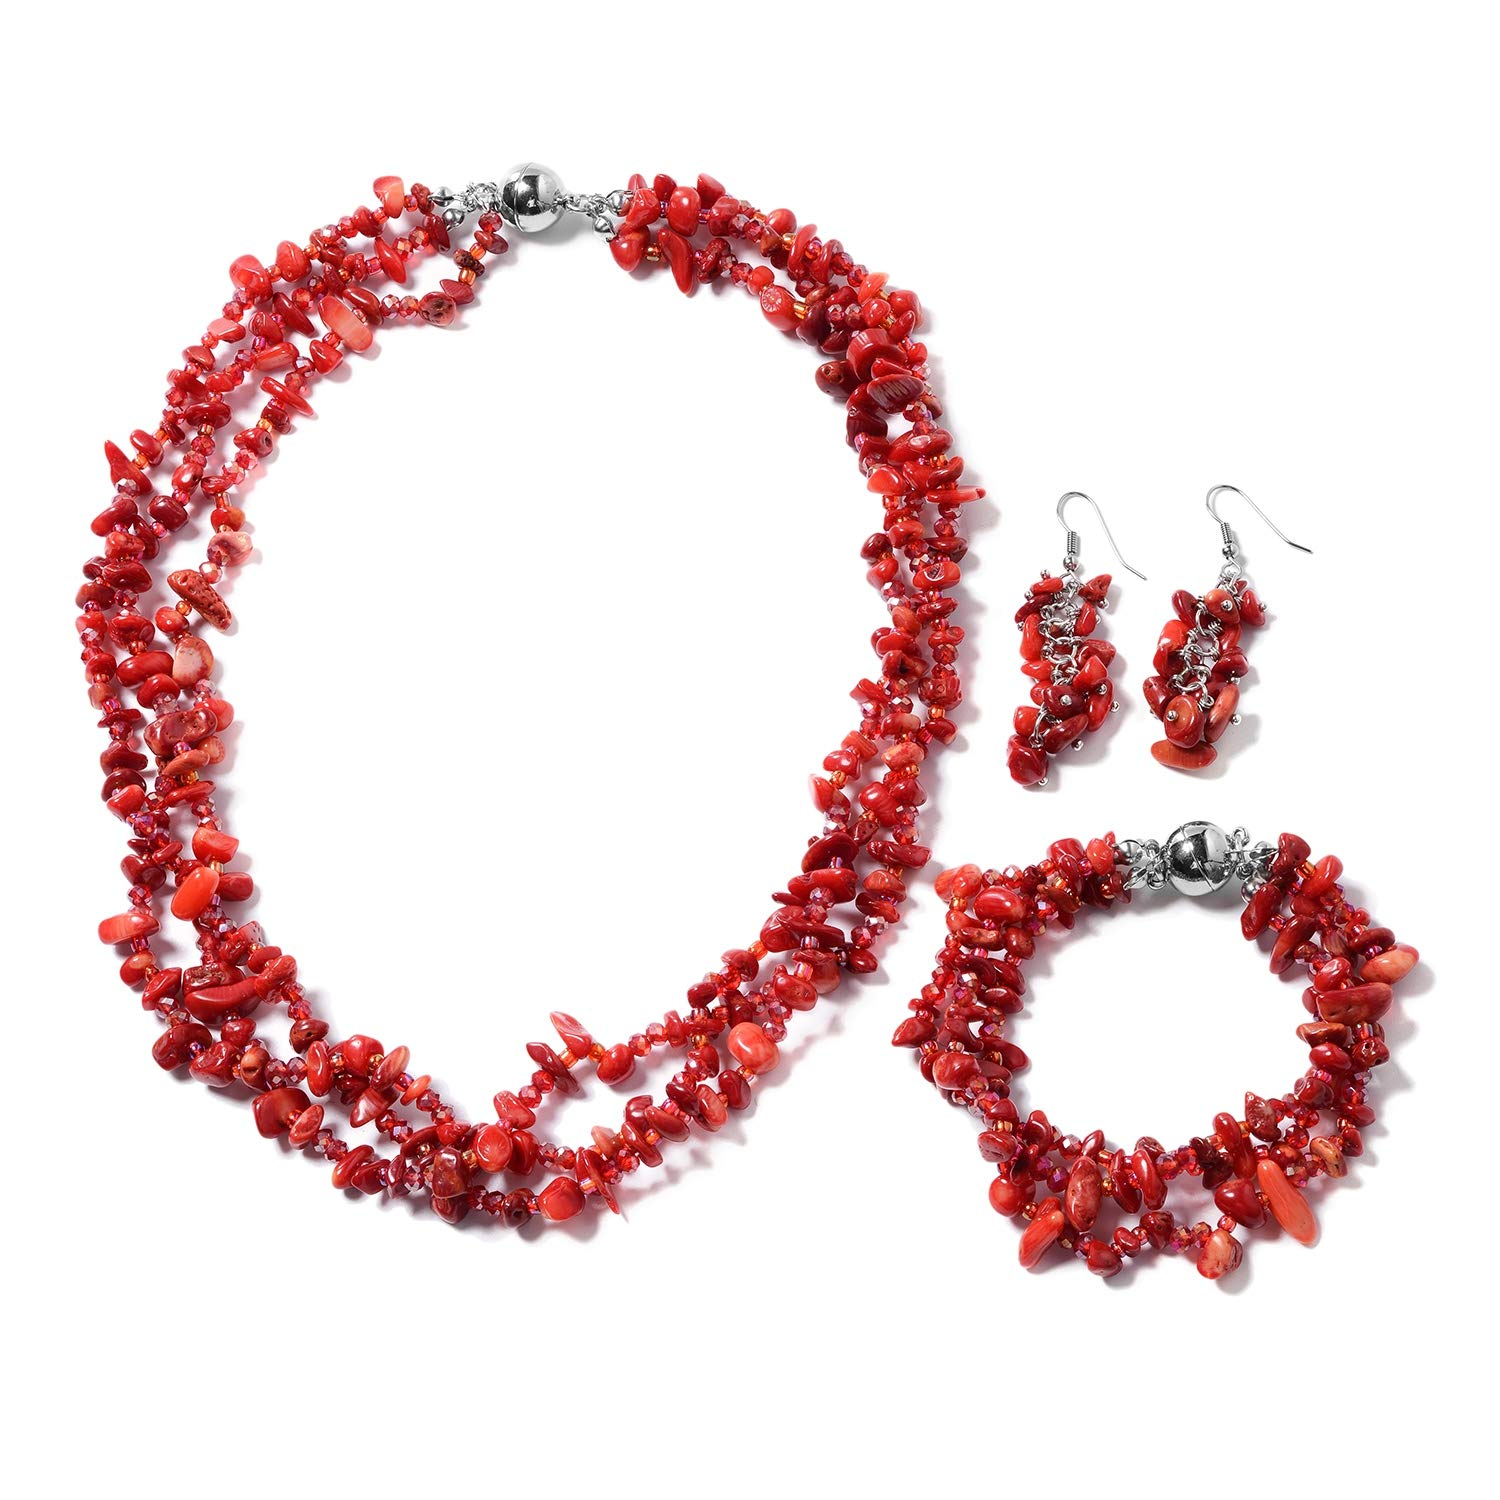 Silvertone, Stainless Steel Fancy Dyed Coral, Red Glass Bracelet 8'' Earring Necklace 20'' Set for Women